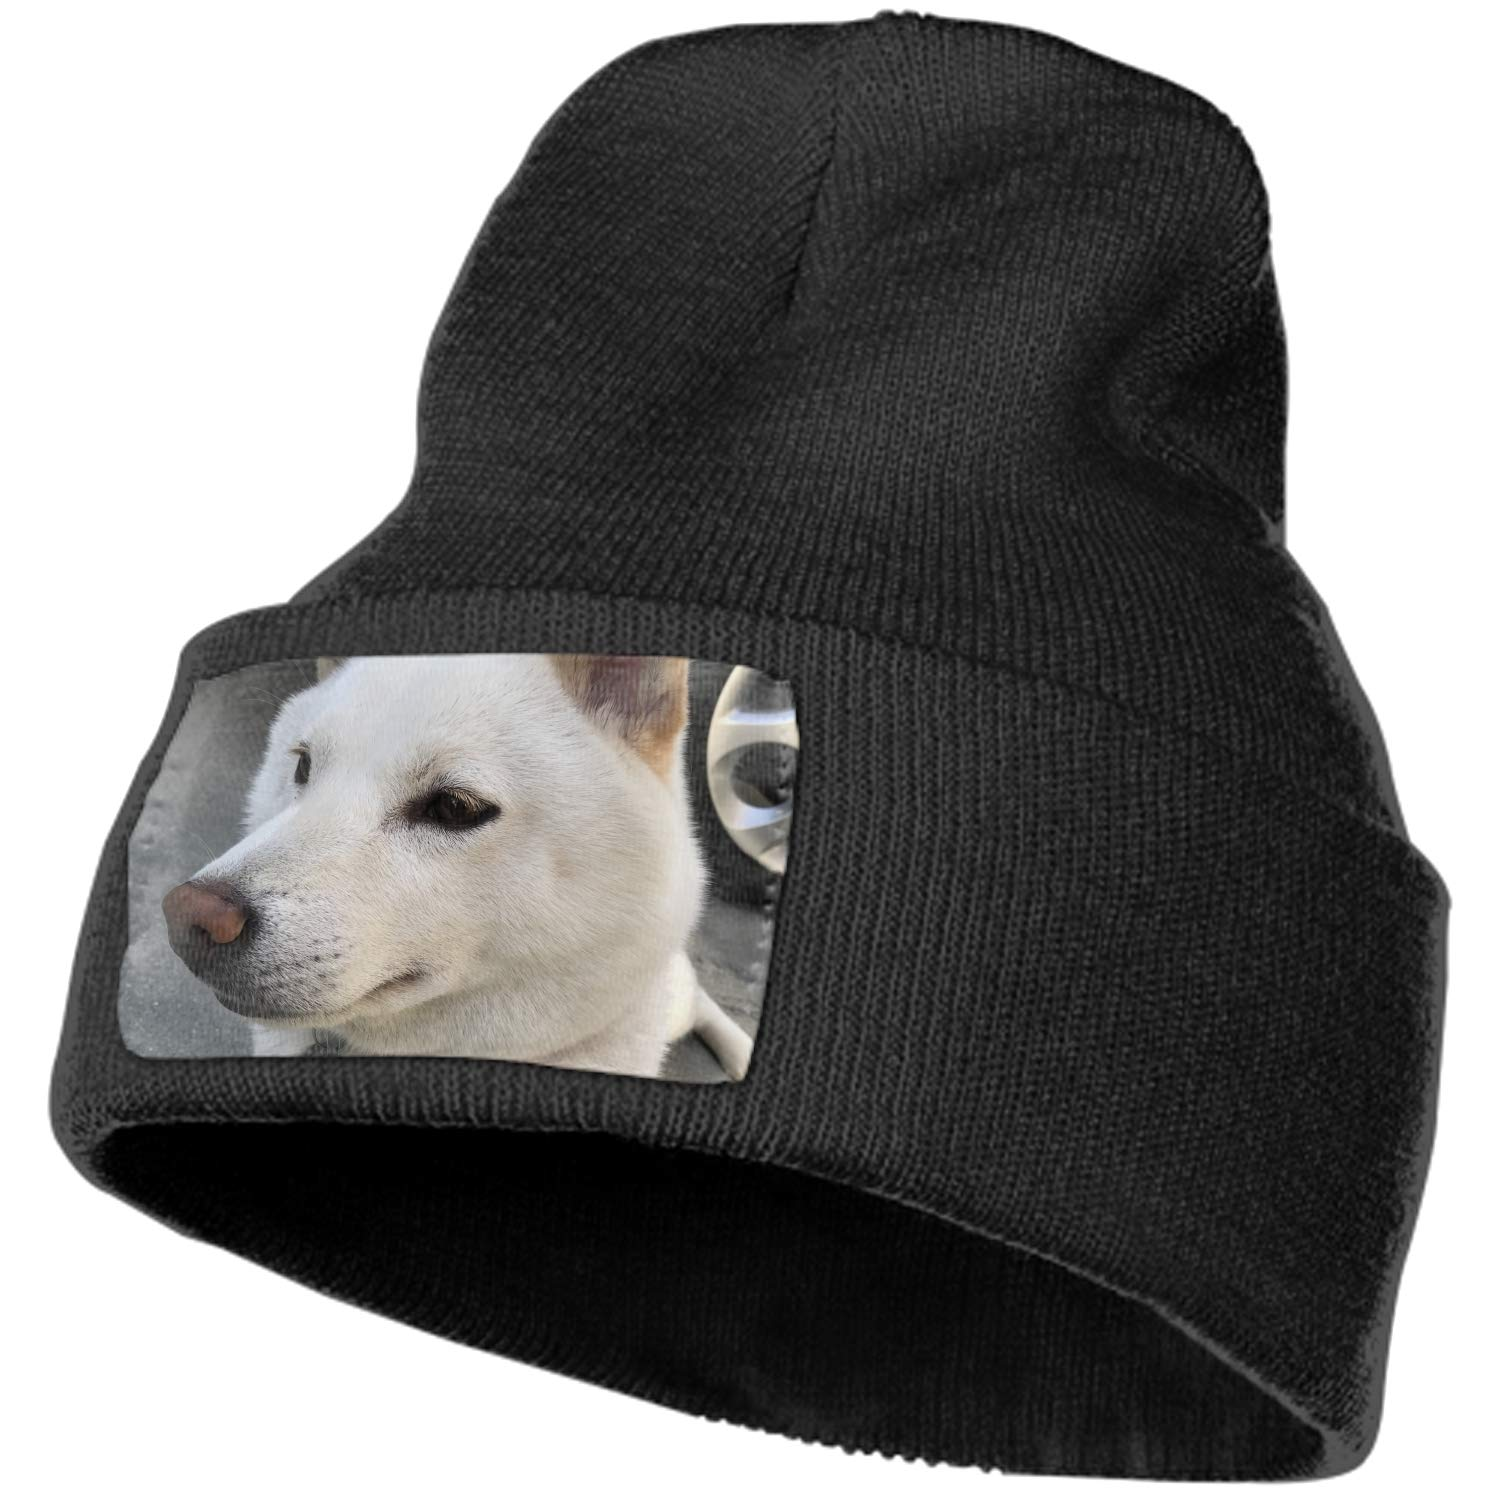 Slouchy Beanie Winter Knit Skull Hat for Women Men with Animal Dog at  Amazon Men s Clothing store  3733265bf